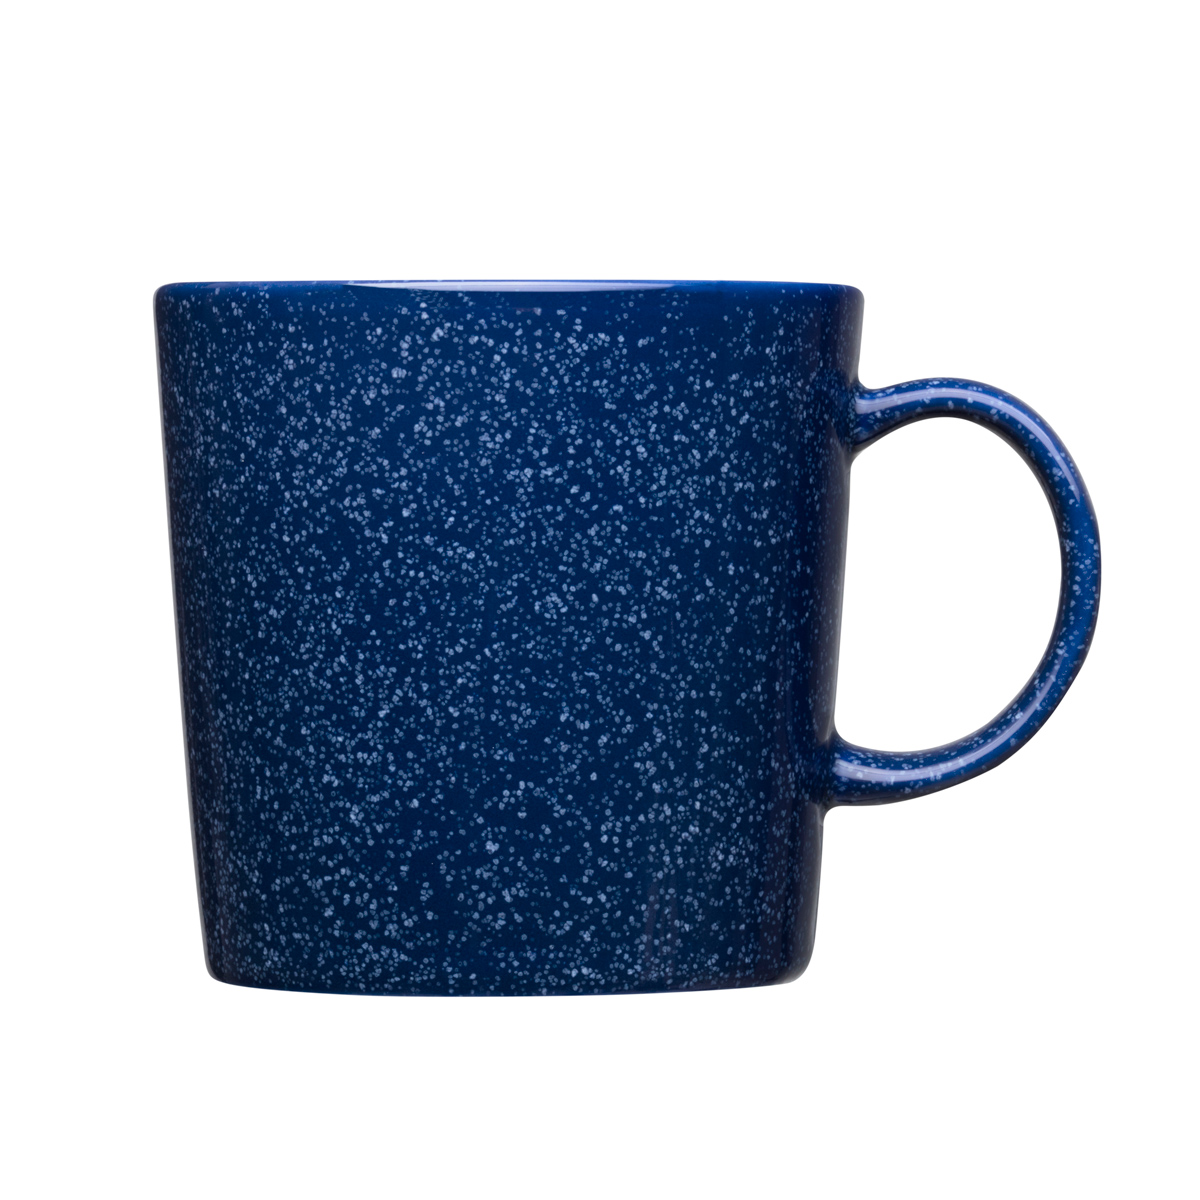 iittala teema dotted blue mug iittala teema dotted blue dinnerware. Black Bedroom Furniture Sets. Home Design Ideas